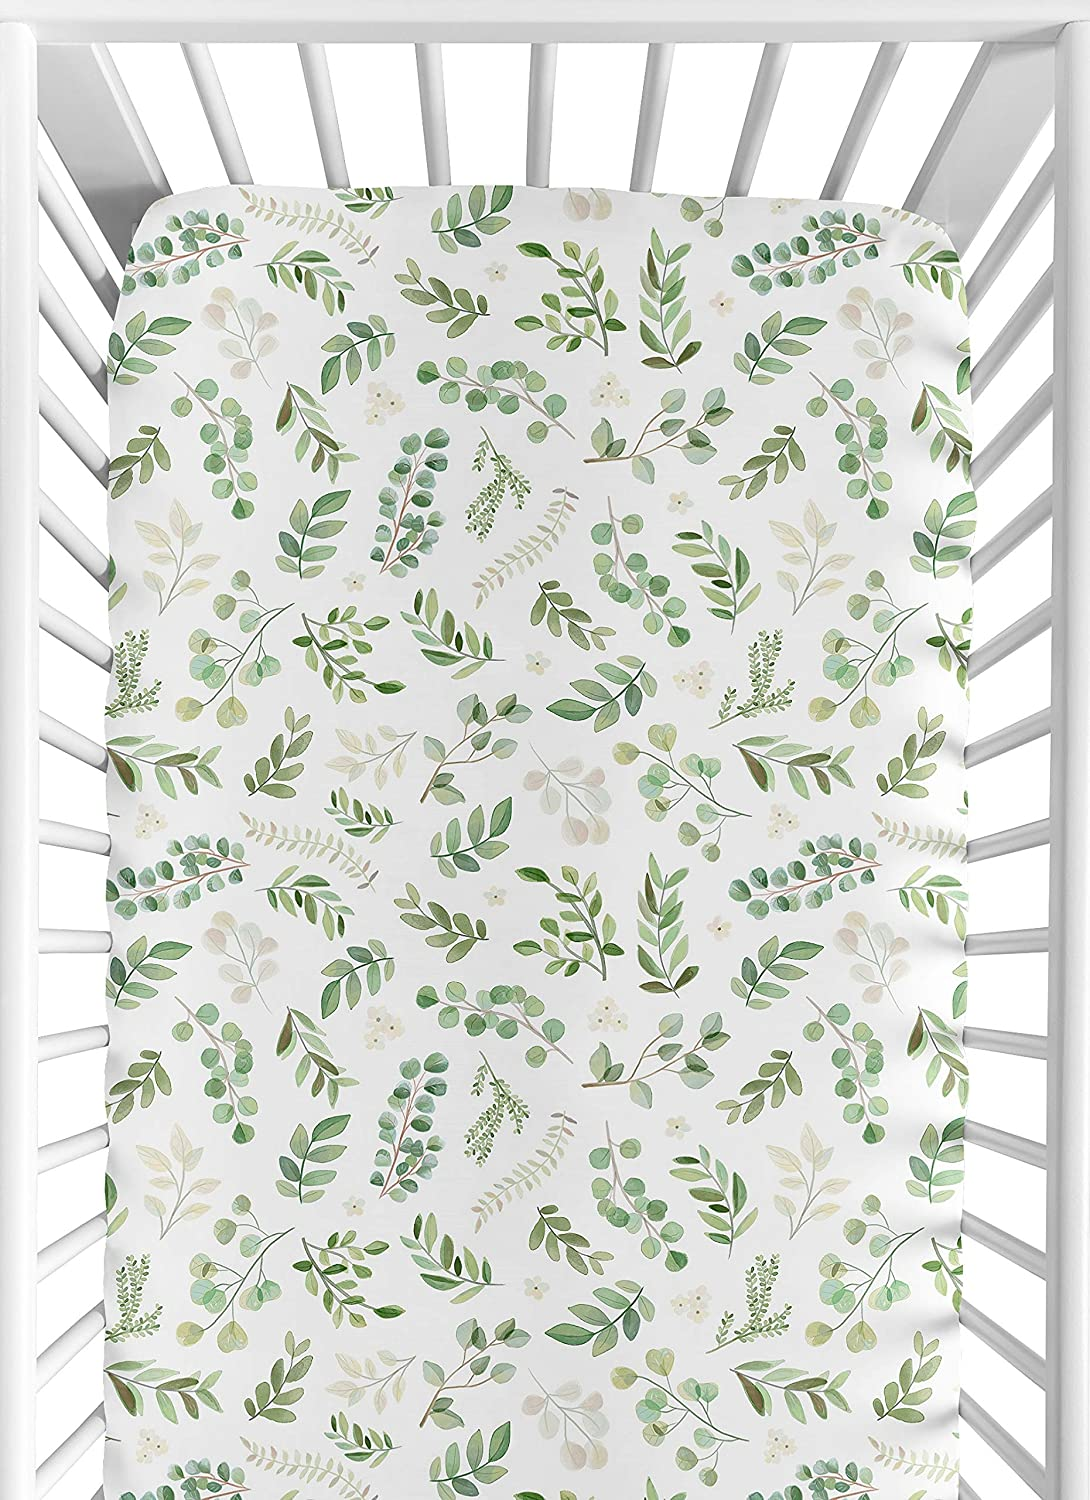 Sweet Jojo Designs Leaf Boy Girl Jersey Stretch Knit Baby Fitted Crib Sheet for Soft Toddler Bed Nursery - Green White Boho Watercolor Botanical Floral Flower Woodland Tropical Garden